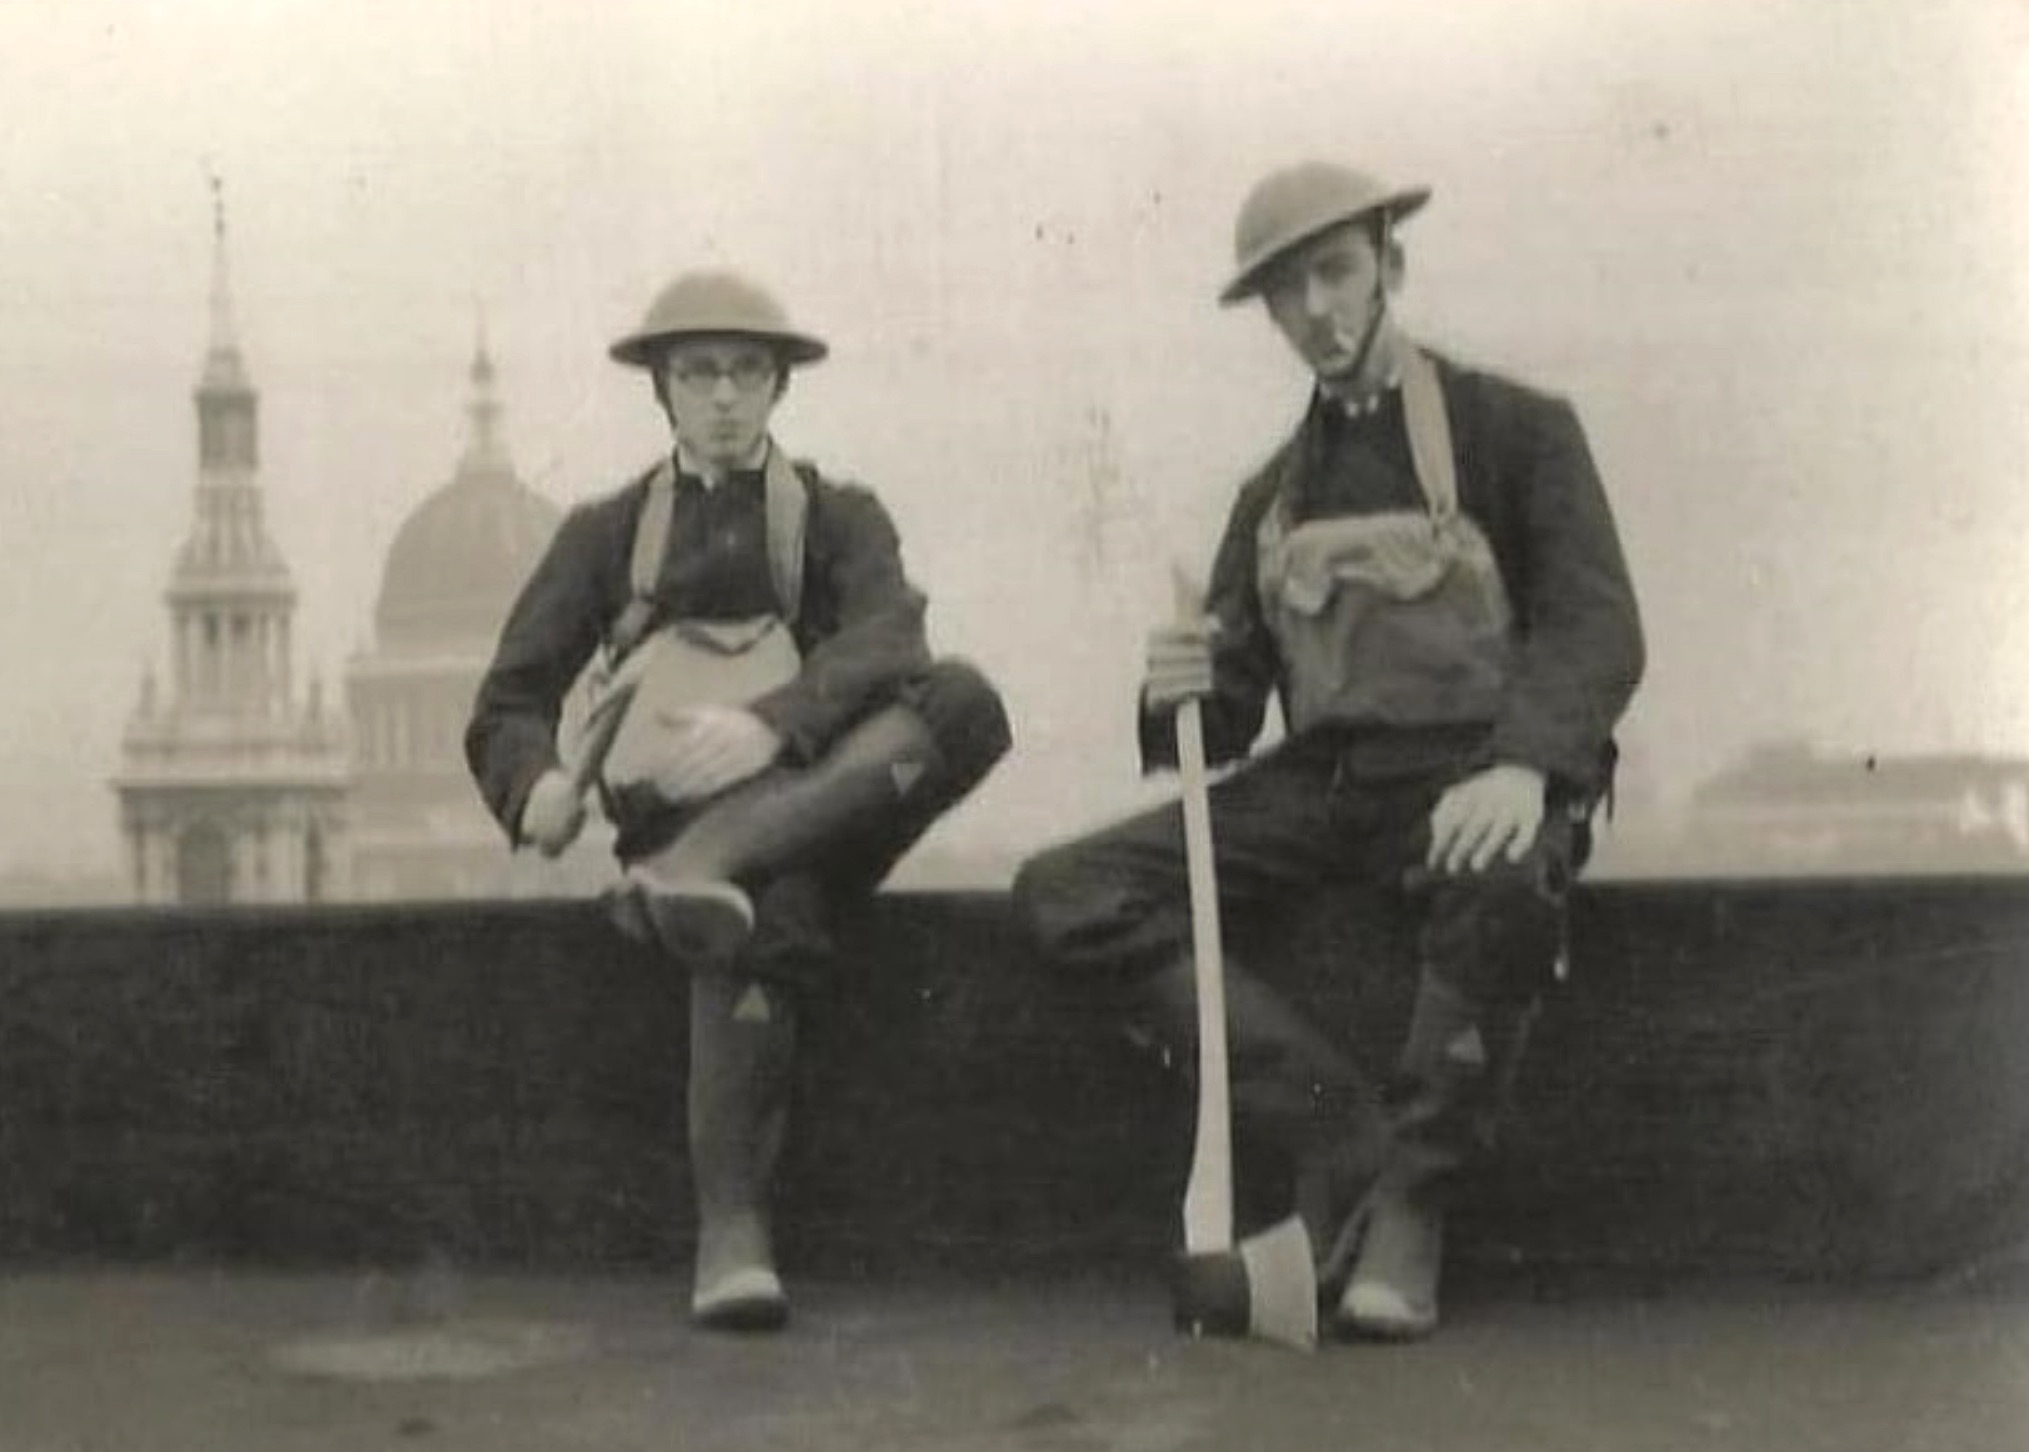 WWII London Fire Watchers, with St Paul's Cathedral in the background